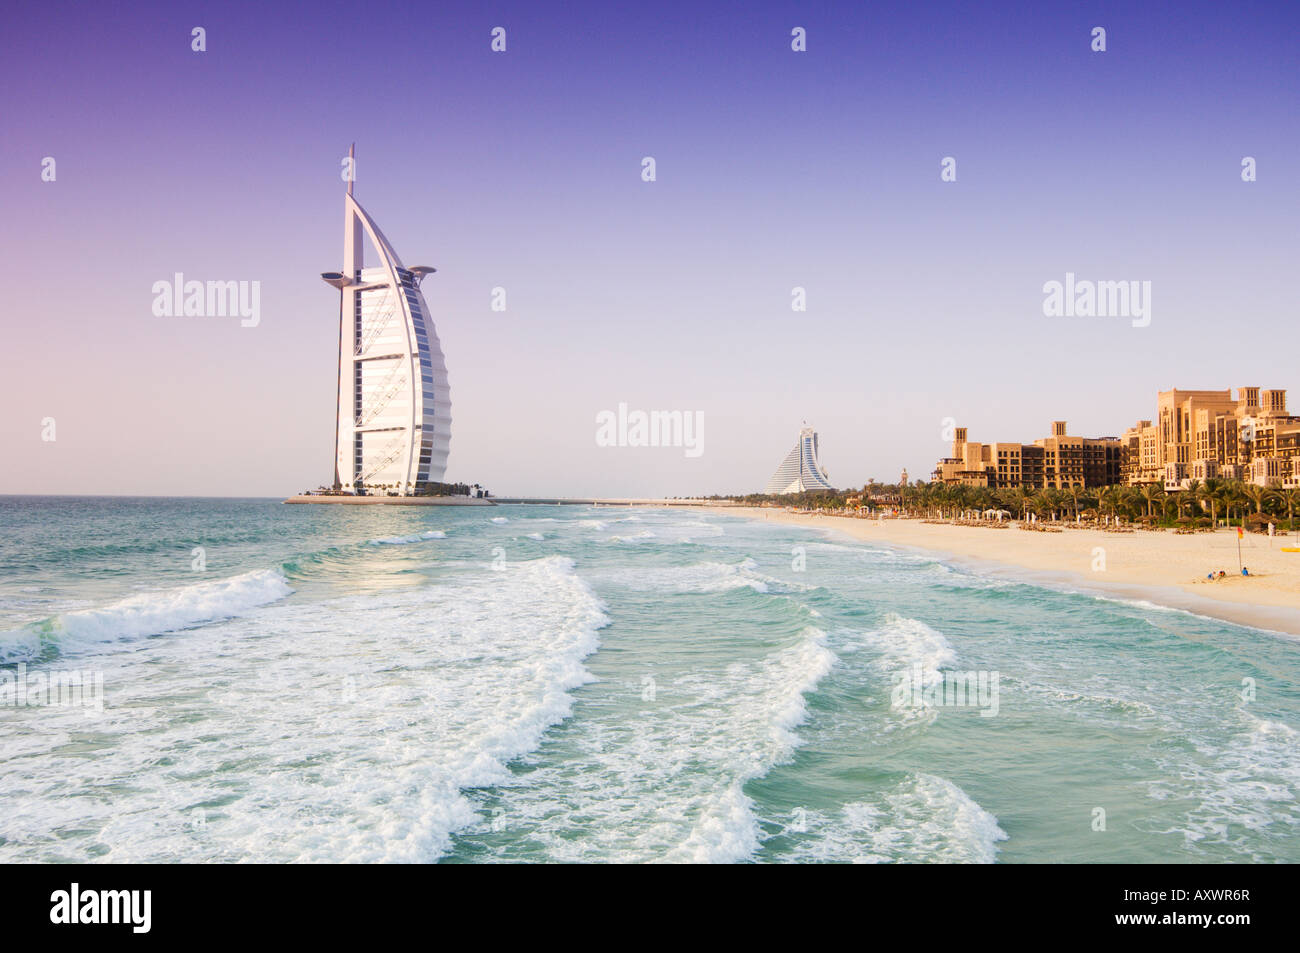 Burj Al Arab, Dubai, Émirats arabes unis, Moyen Orient Photo Stock